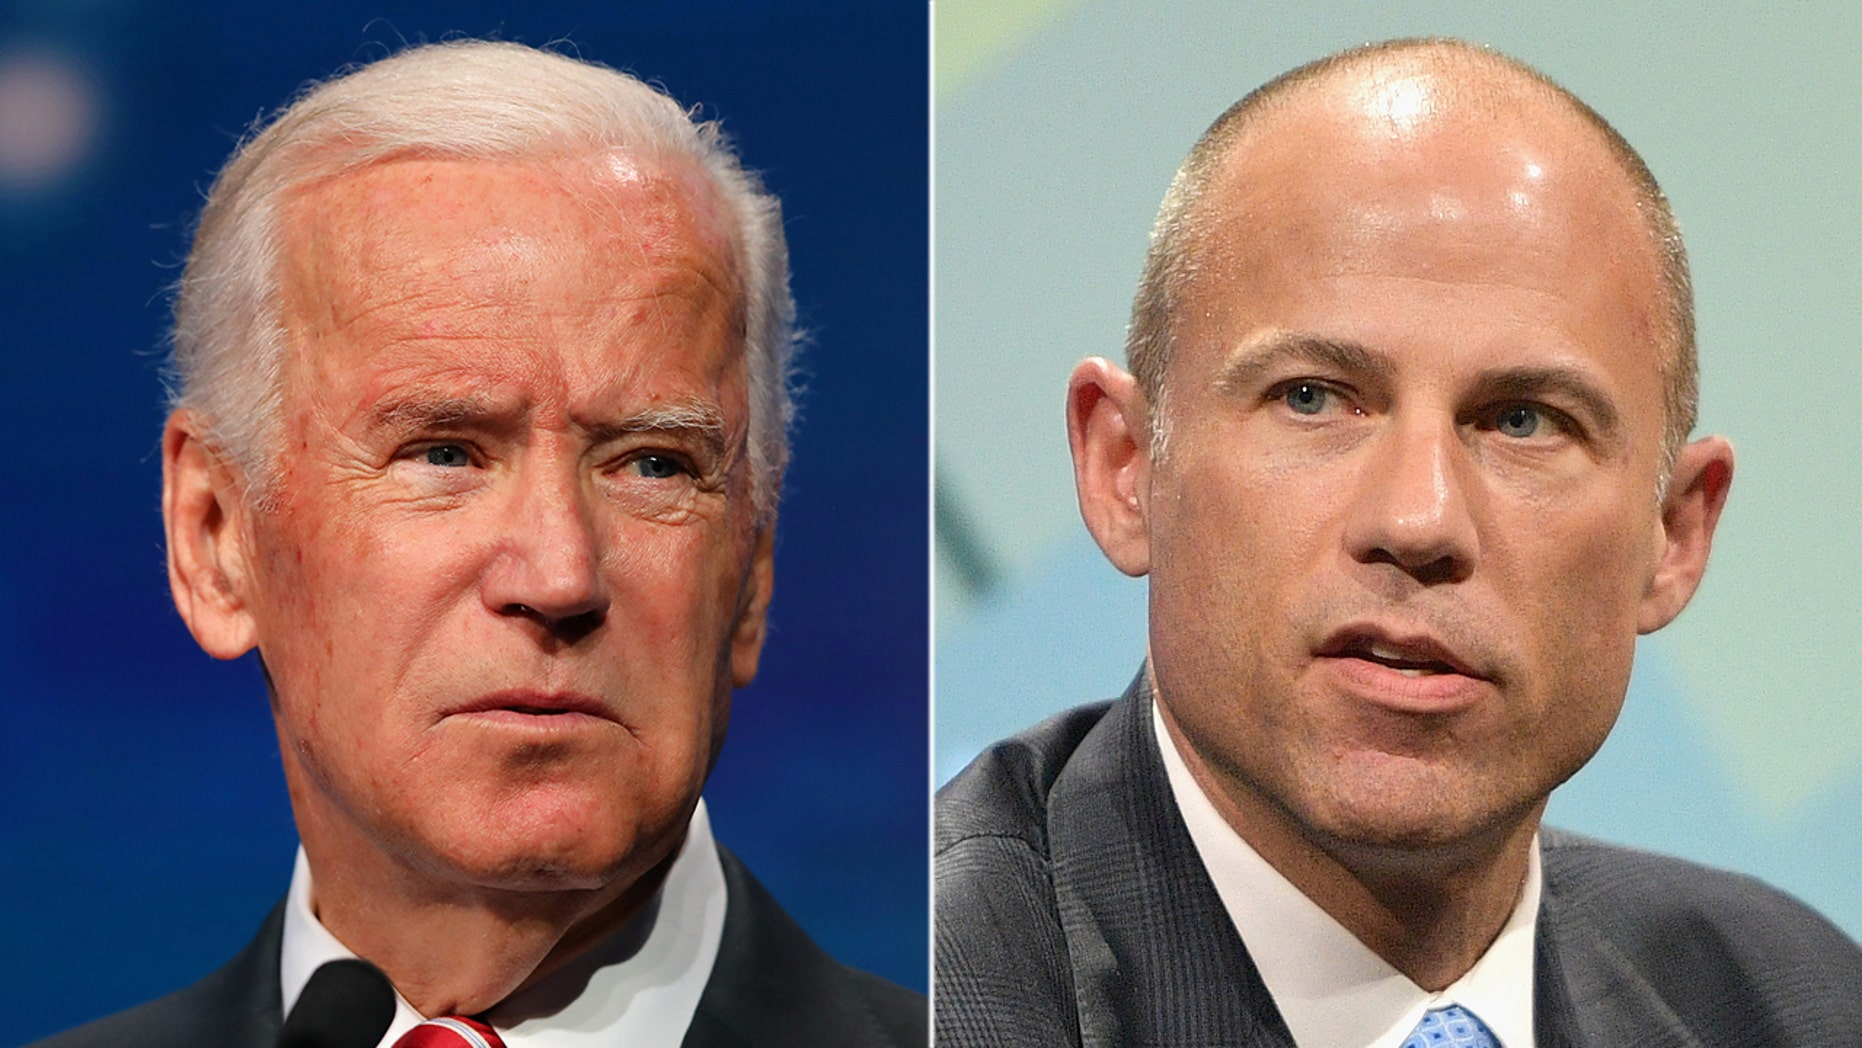 Former Vice President Joe Biden, who formally announced his 2020 bid on Thursday morning, has been backed by disgraced lawyer Michael Avenatti.